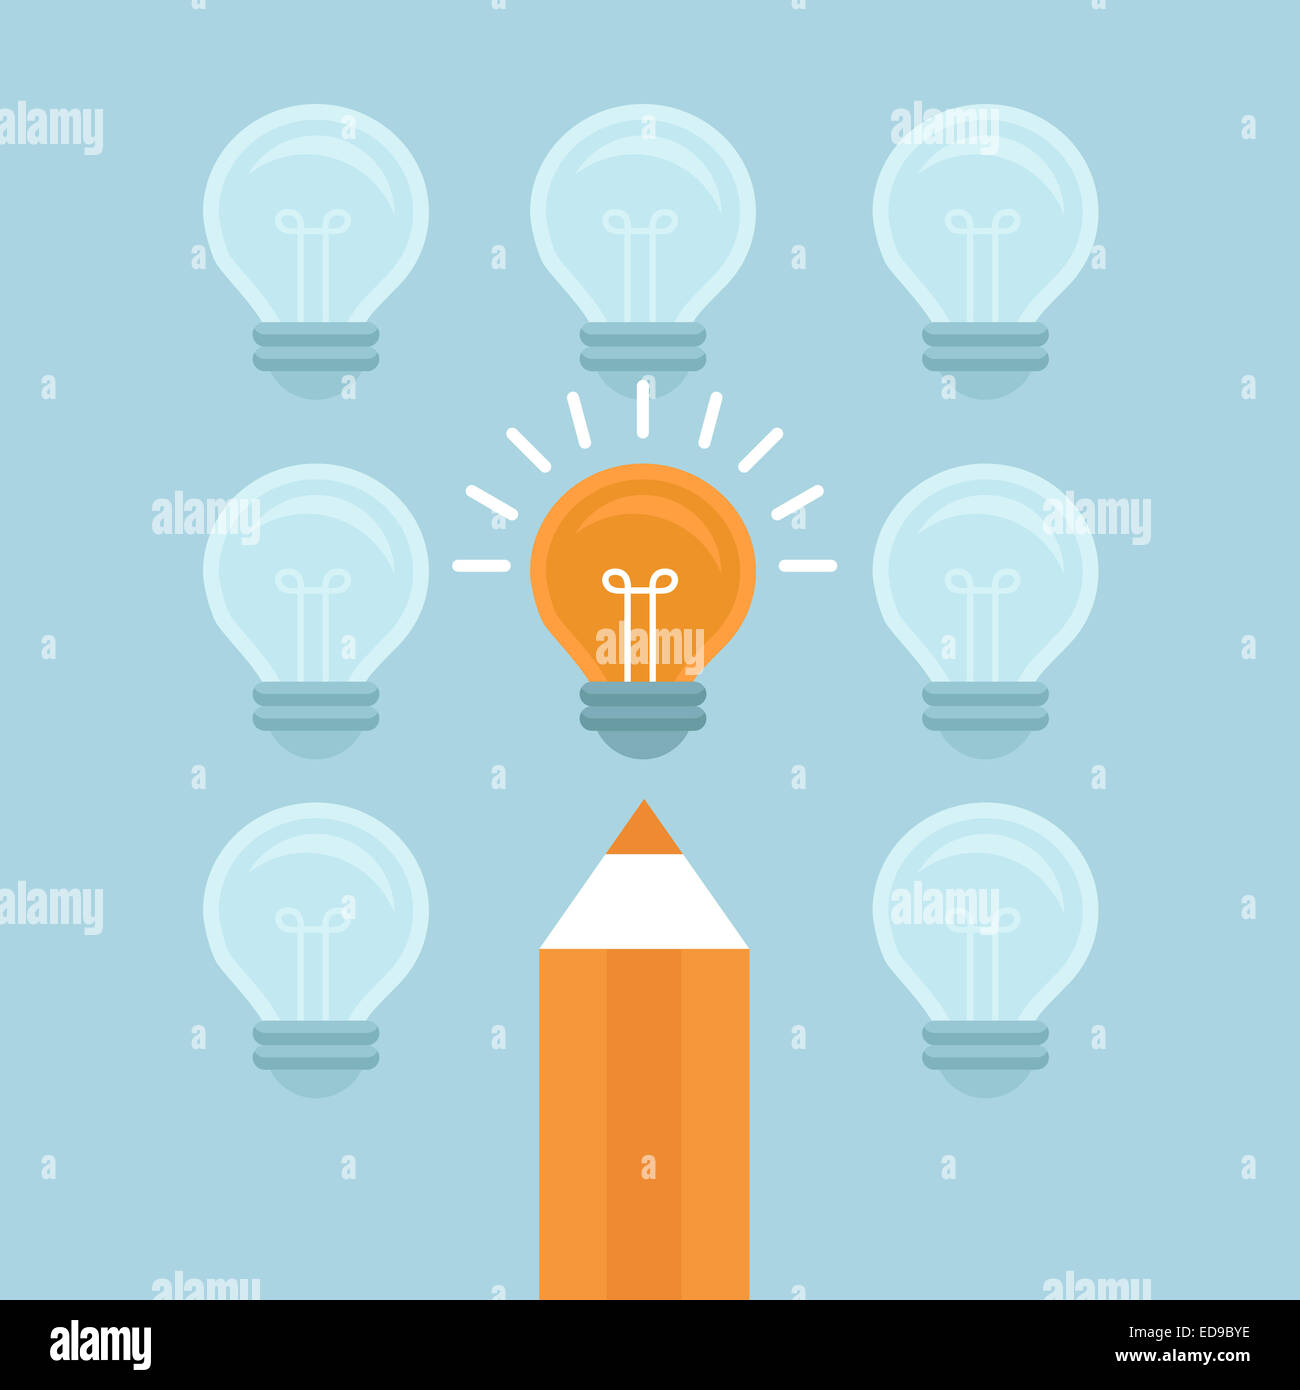 Marketing concept in flat style - stand out from the crowd - bright light bulb and pencil - Stock Image